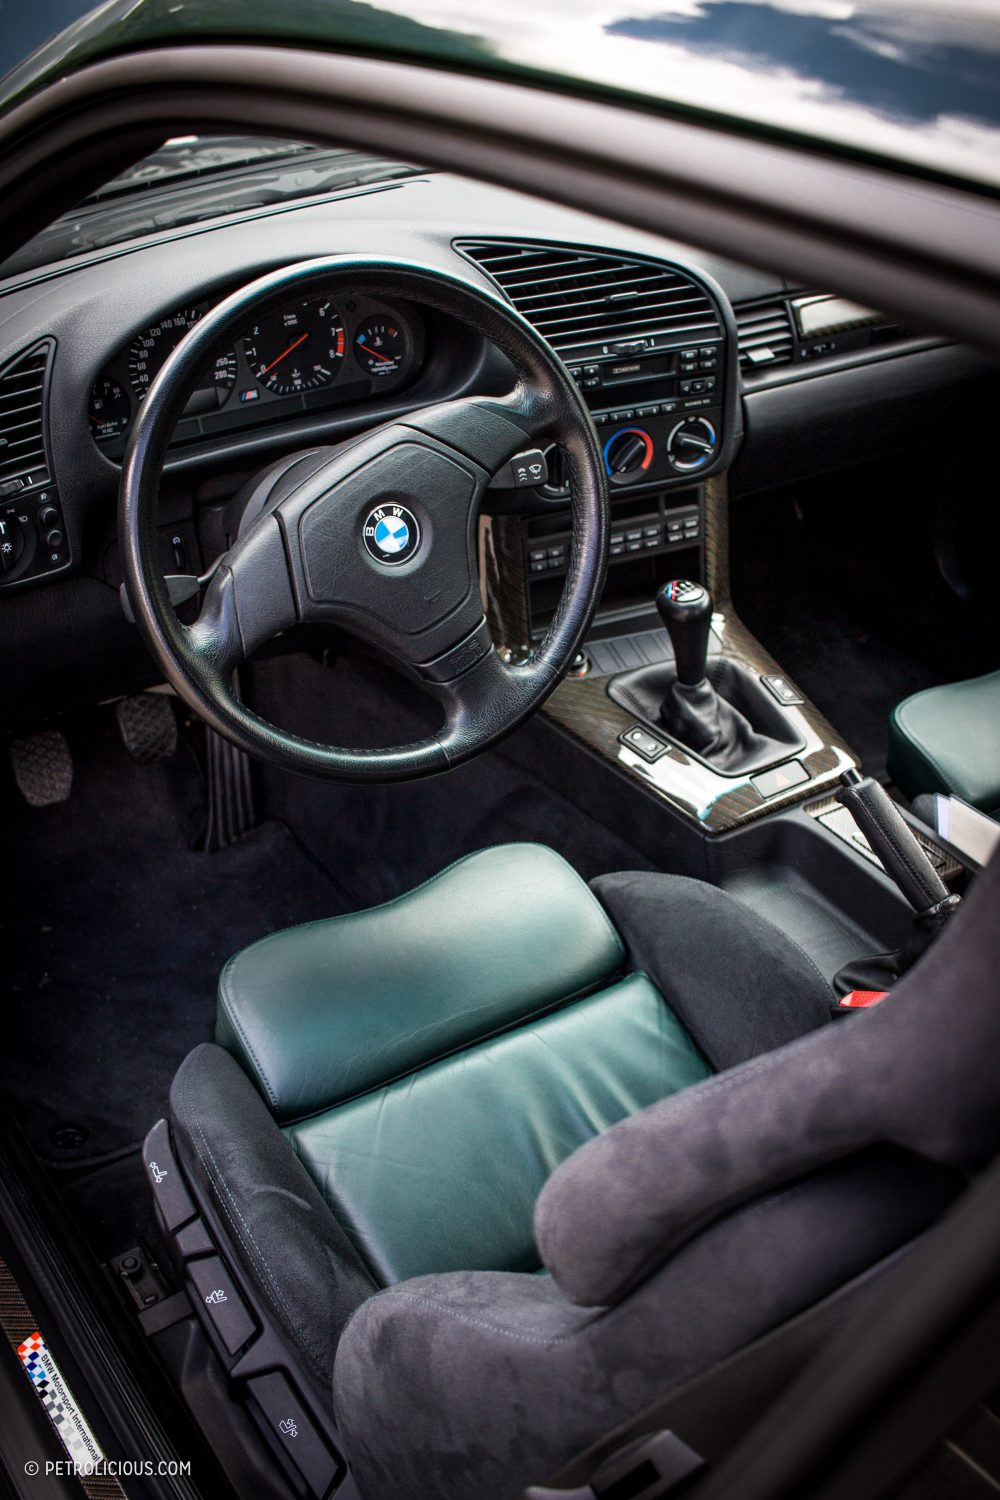 Awesome Driving A Dream Car The Limited Edition Bmw E36 M3 Gt Petrolicious